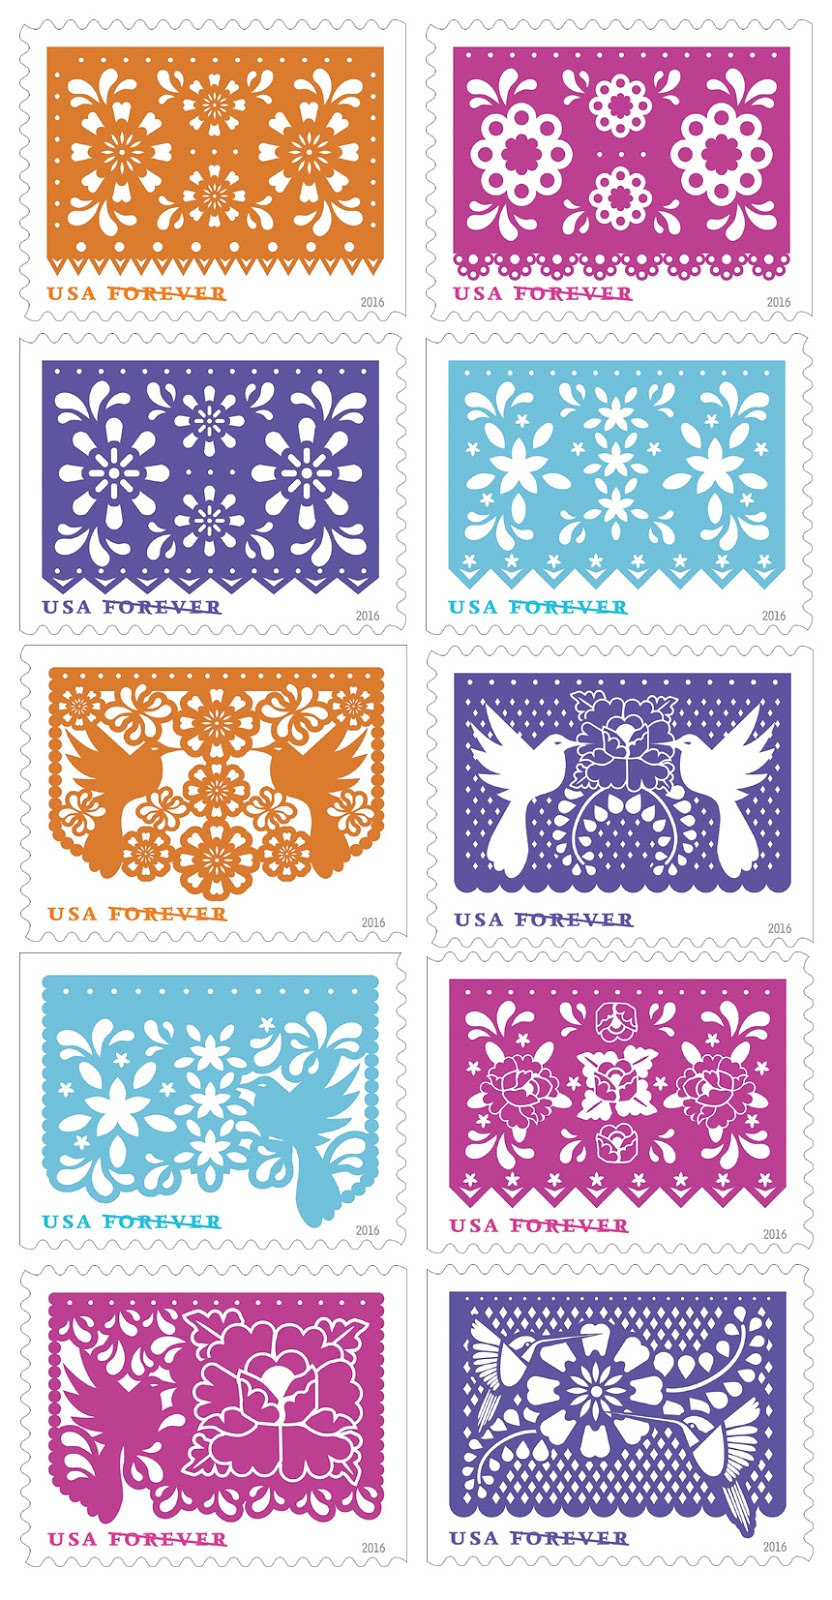 USPS Forever Stamp Colorful Celebrations